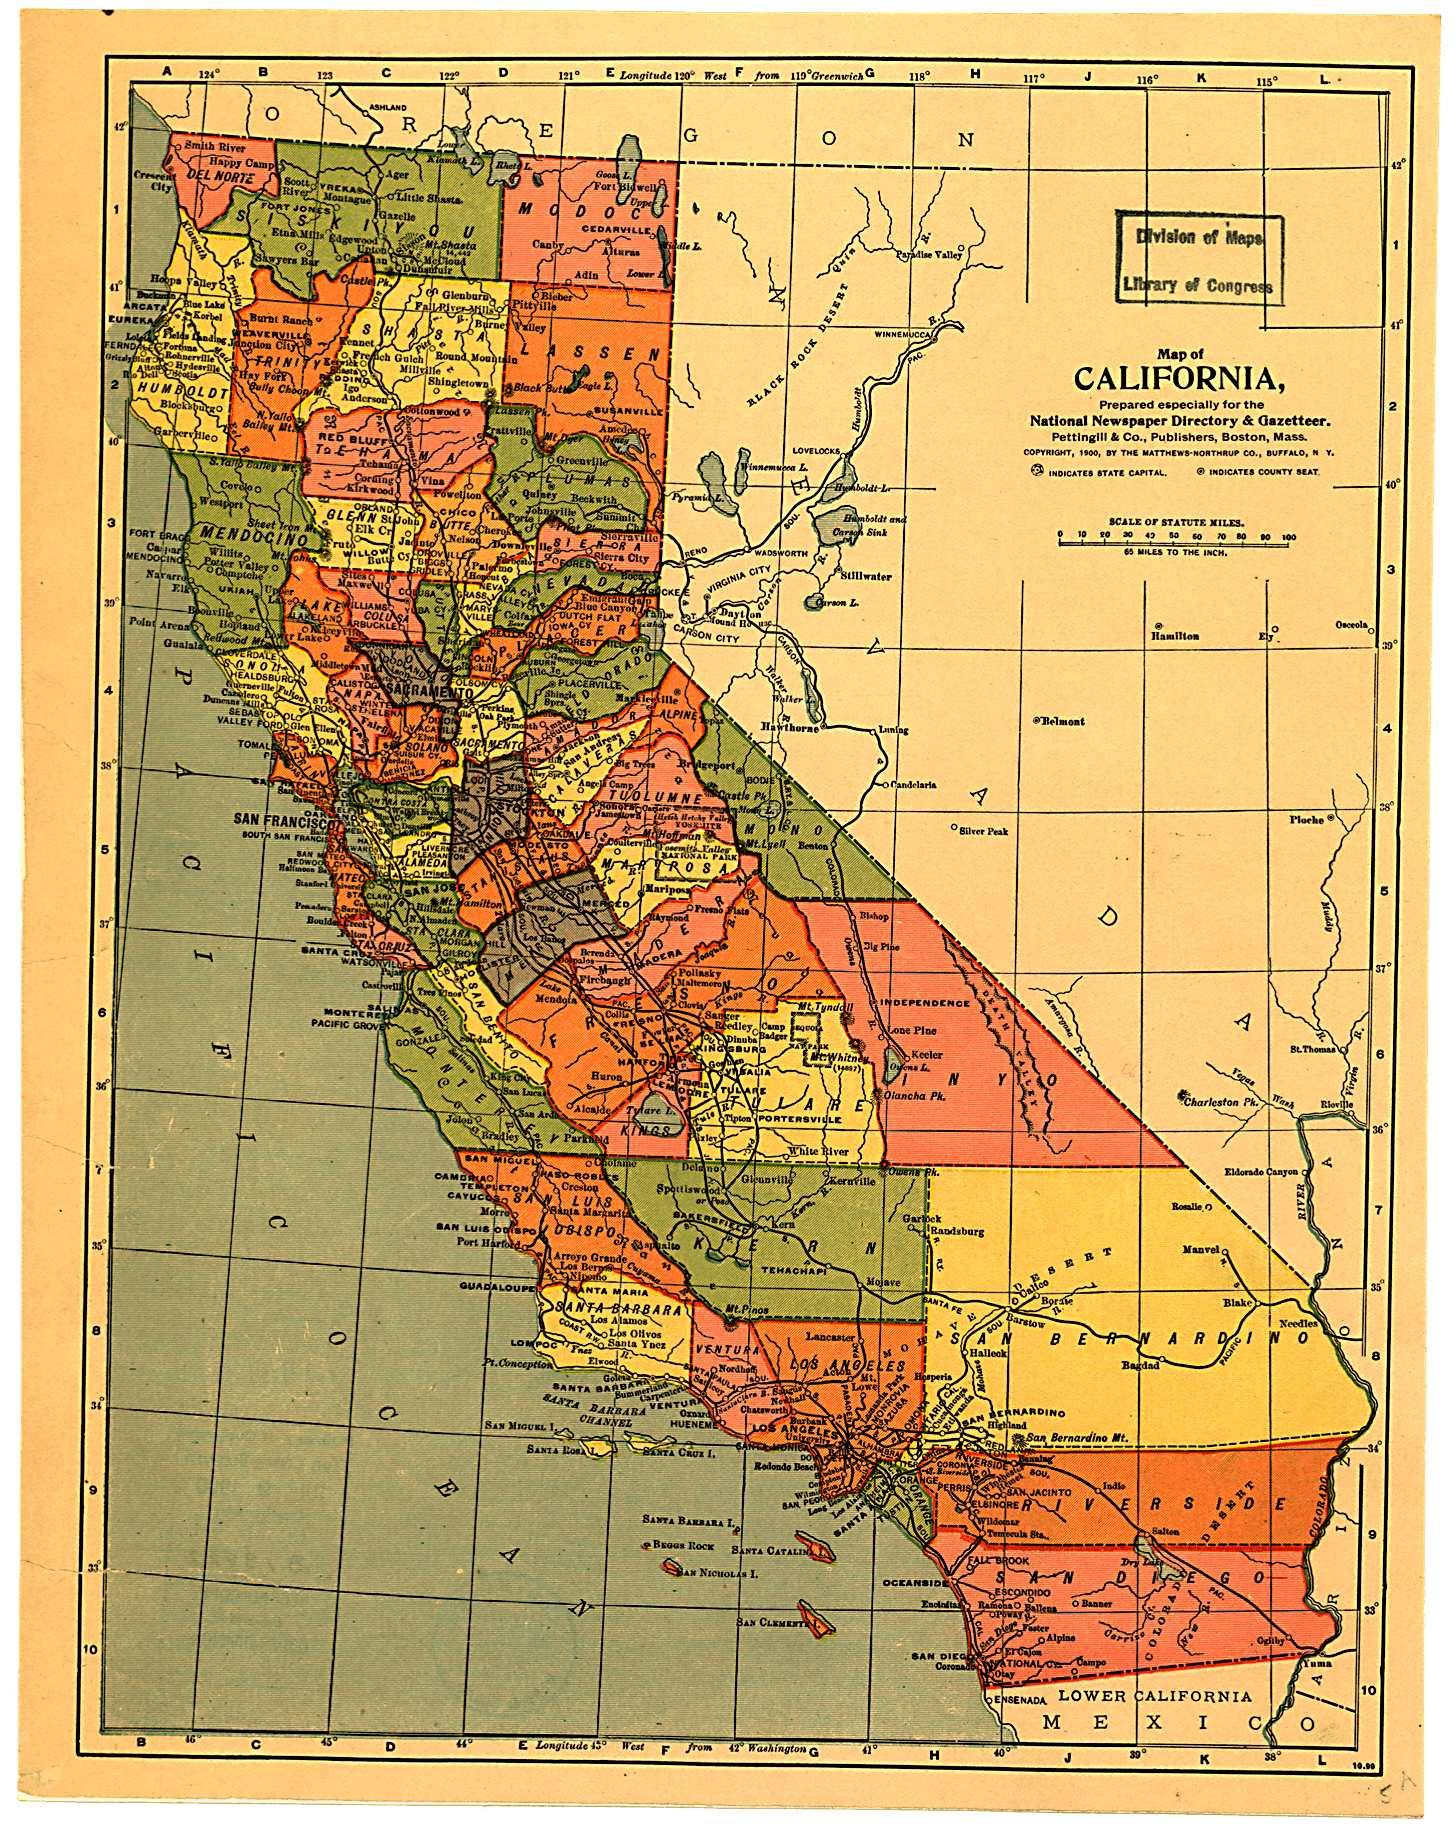 California historical overview_1.jpg